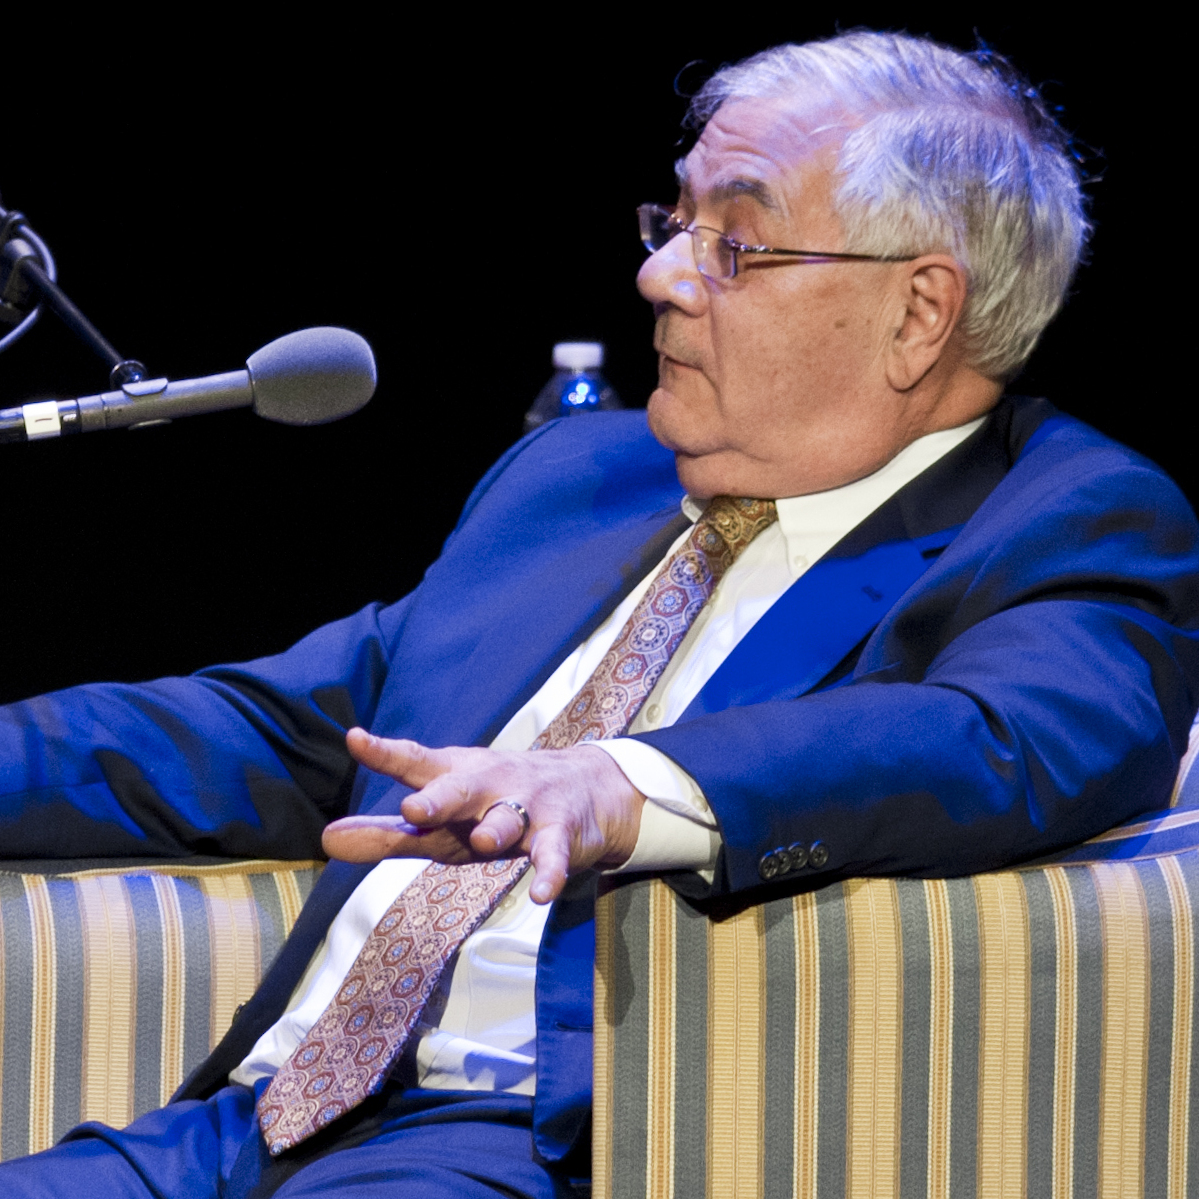 Barney Frank (right), speaking in front of a crowd at the Wilbur Theatre in Boston, told Ask Me Another host Ophira Eisenberg that he's proud of his advocacy work for the gay rights movement.